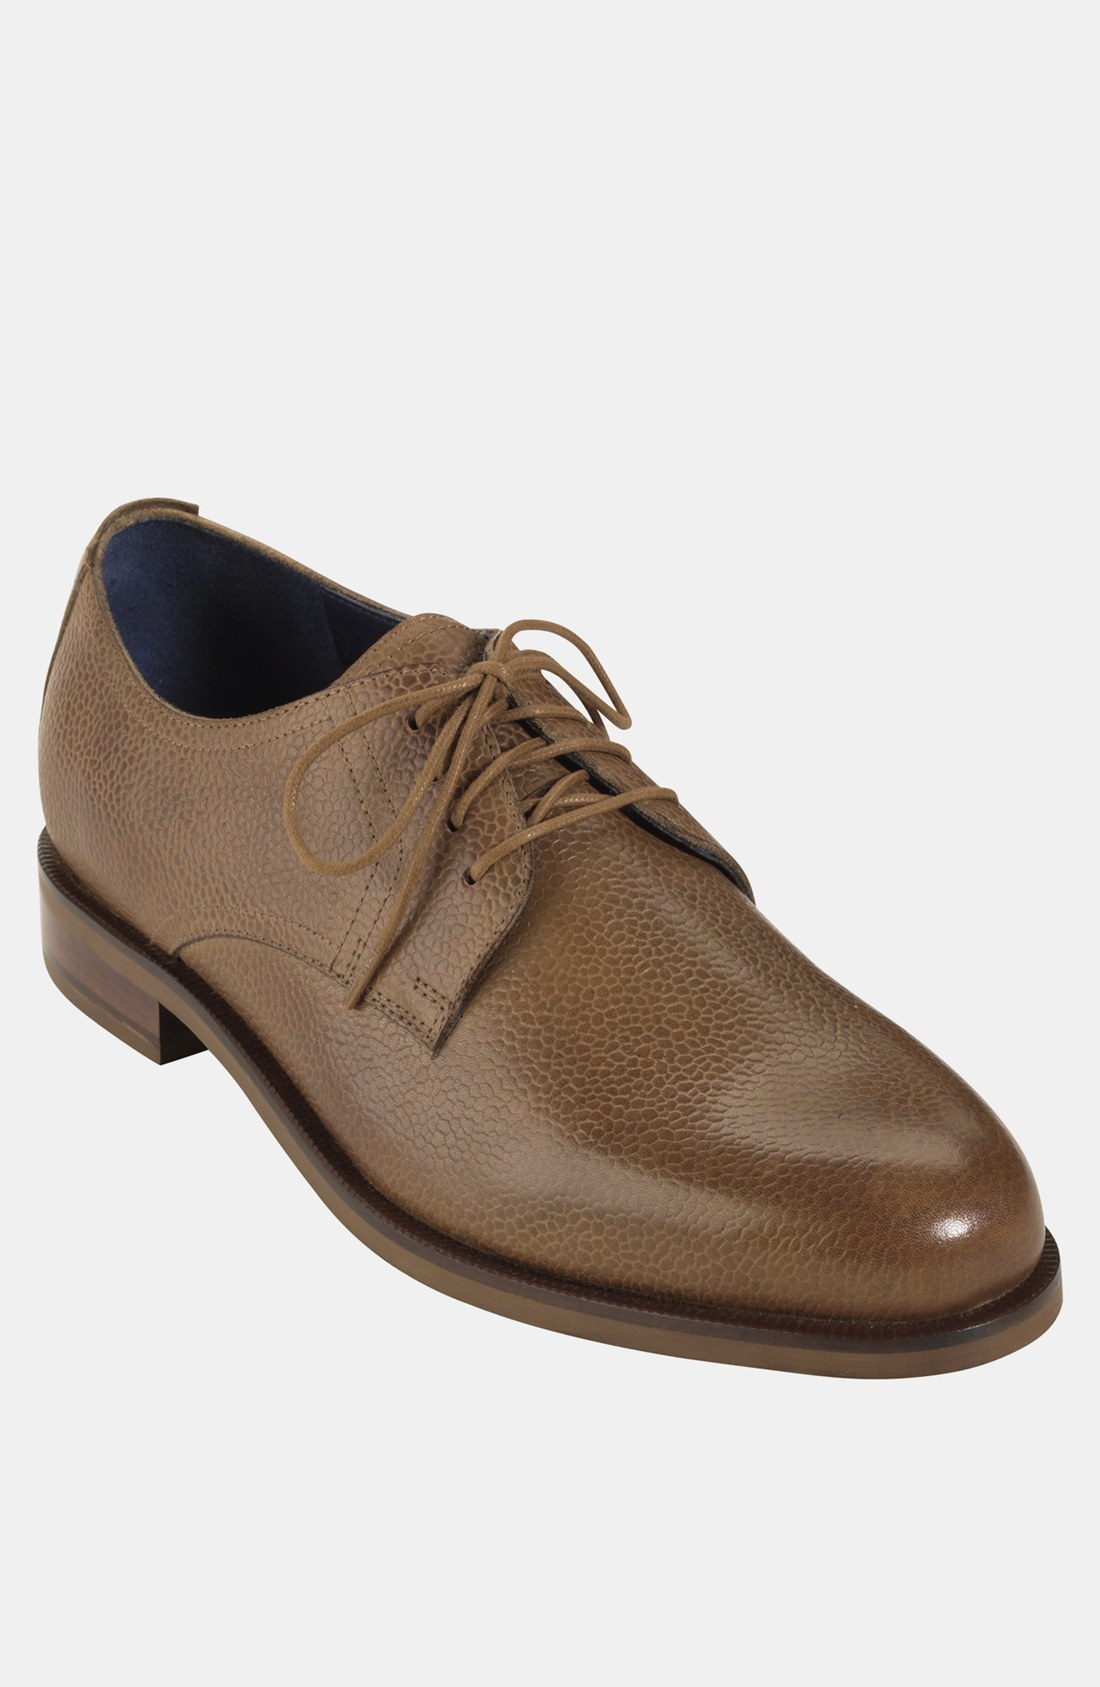 Mens Cole Haan Shoes Nordstrom